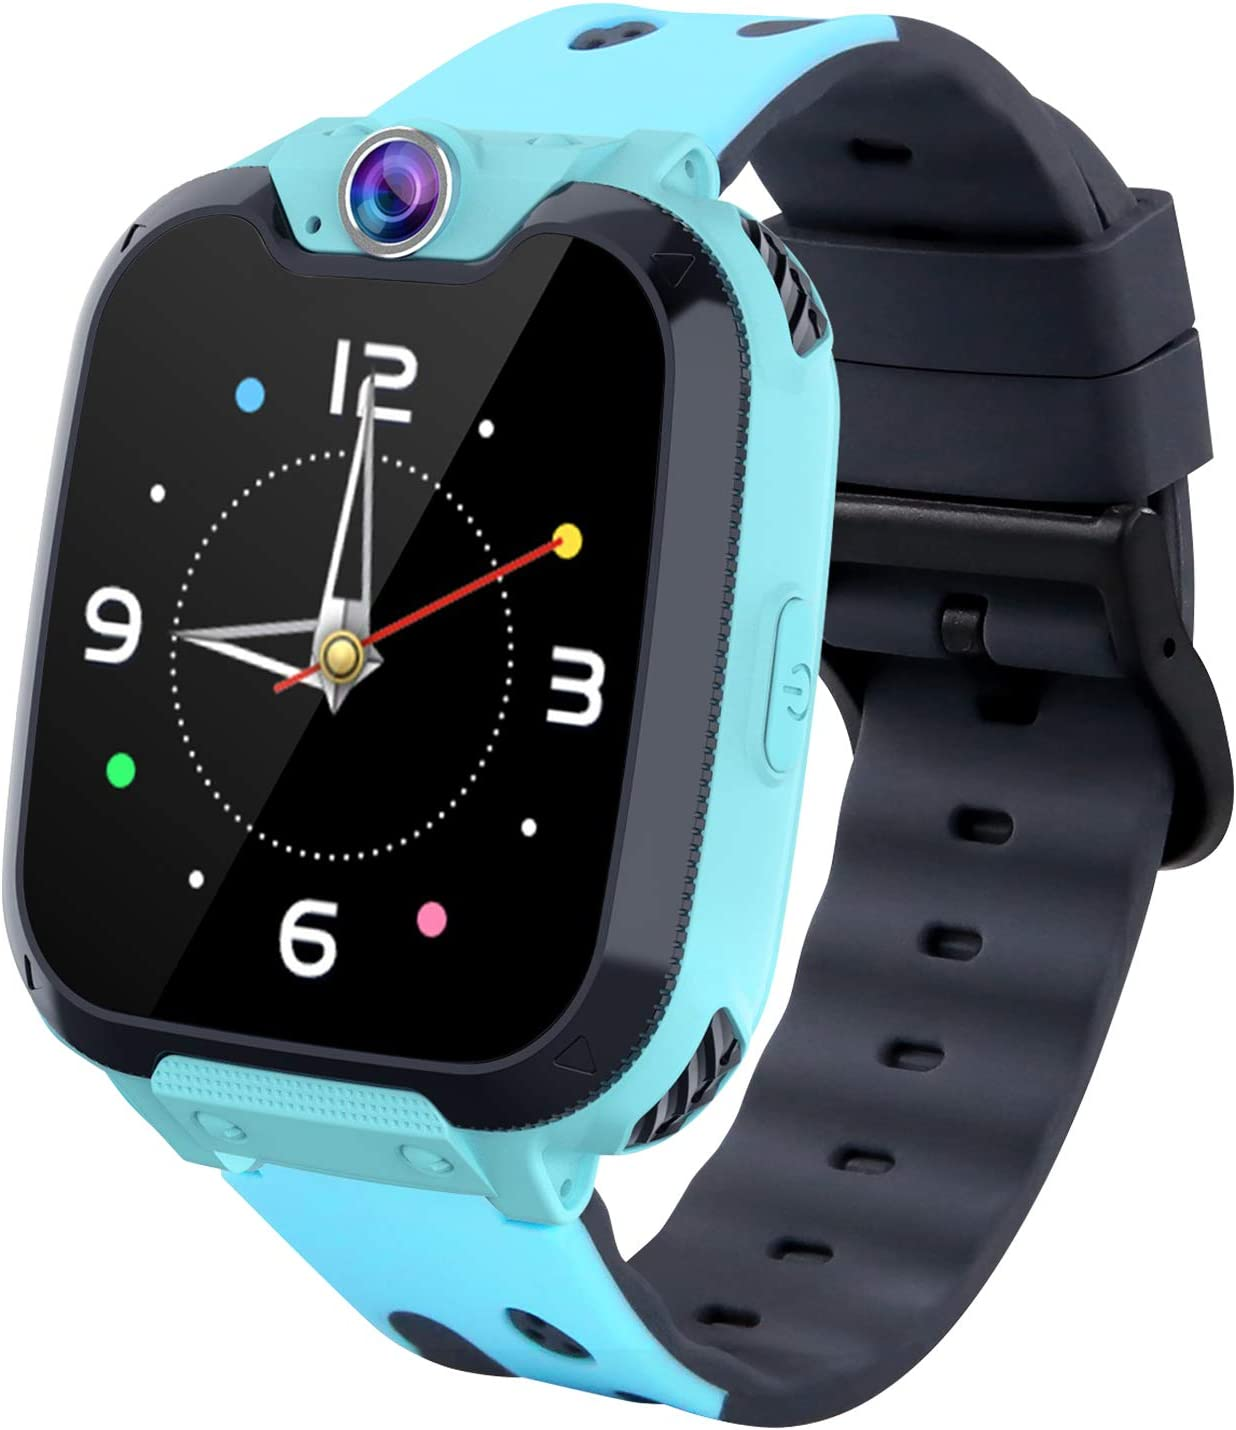 Smart Watches for Kids, HD Touch Screen Sports Smartwatch Phone WAS £28.99 NOW £14.49 w/code 9G9OVOFC @ Amazon